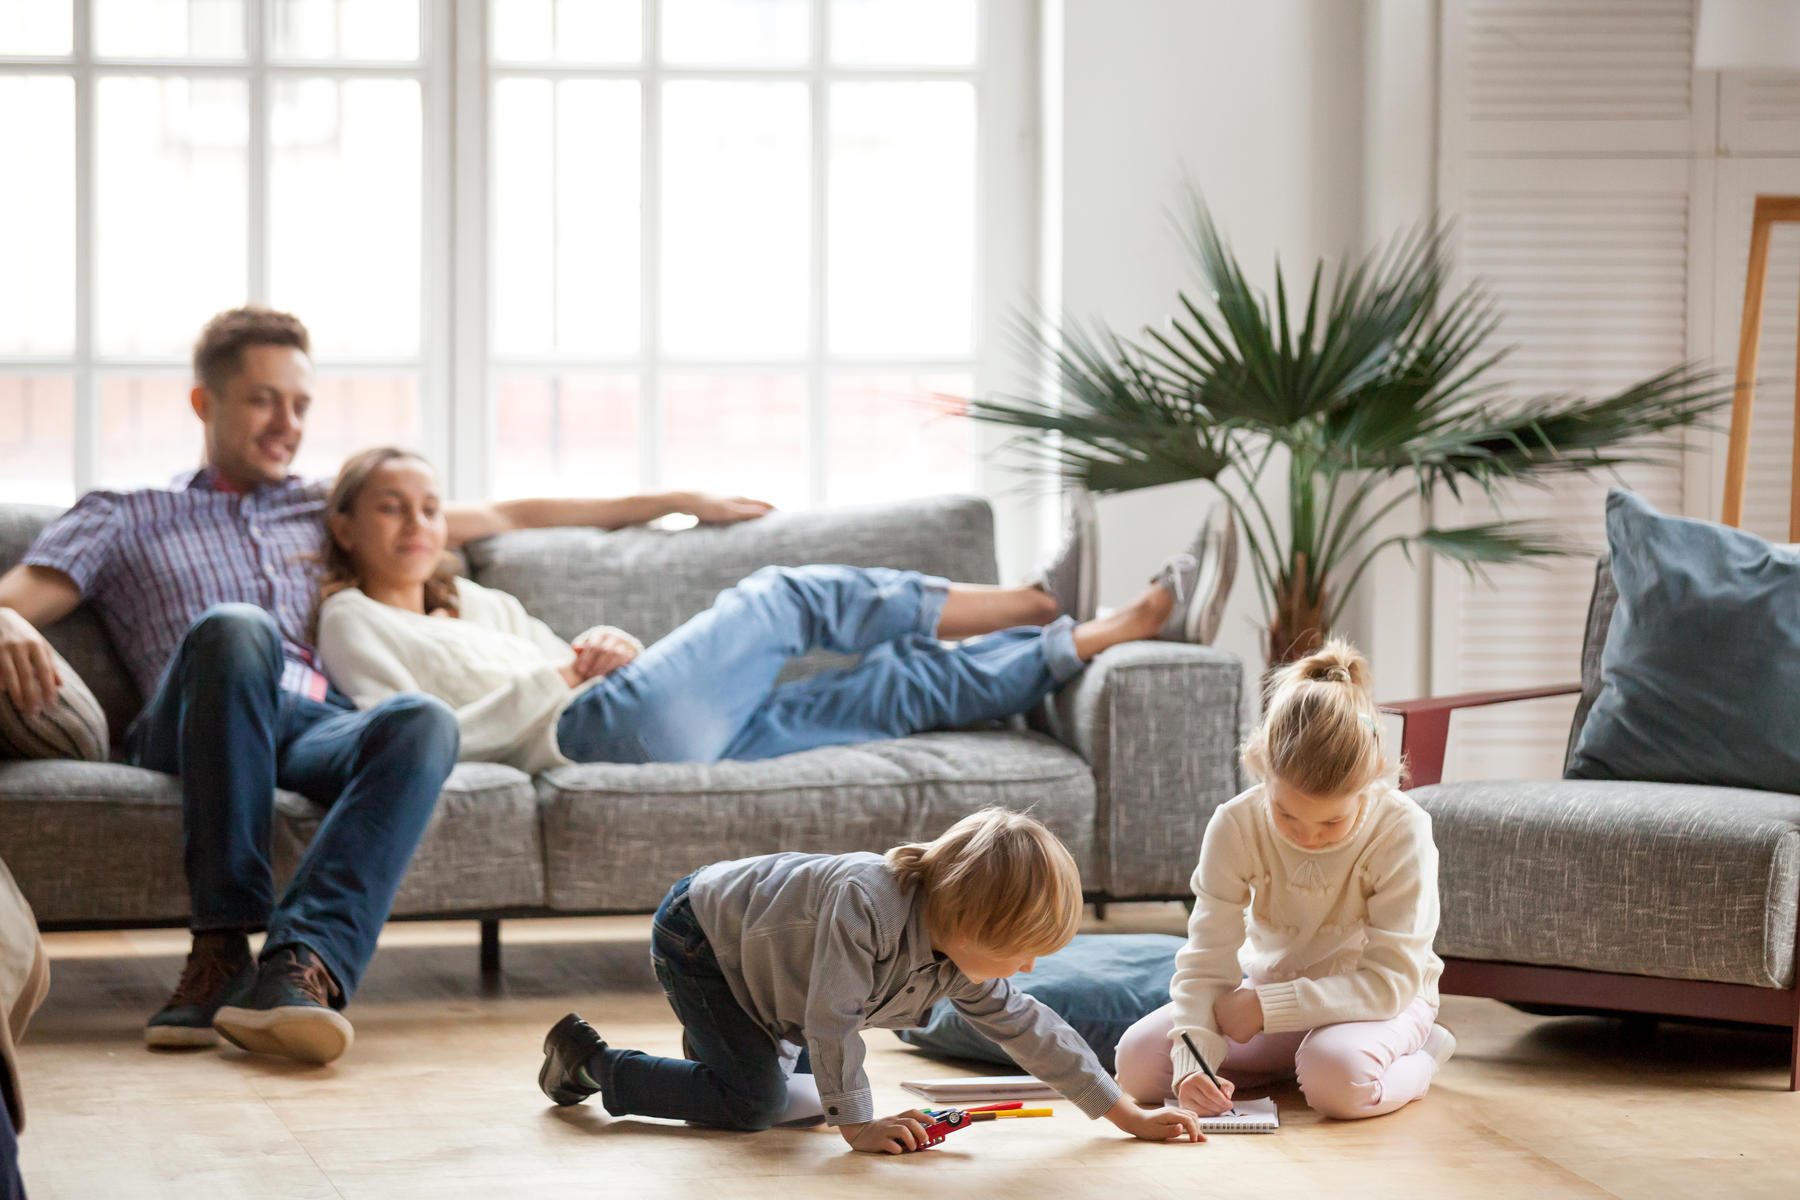 3 Easy Living Room Fixes to Keep Your Family Safe | Parents